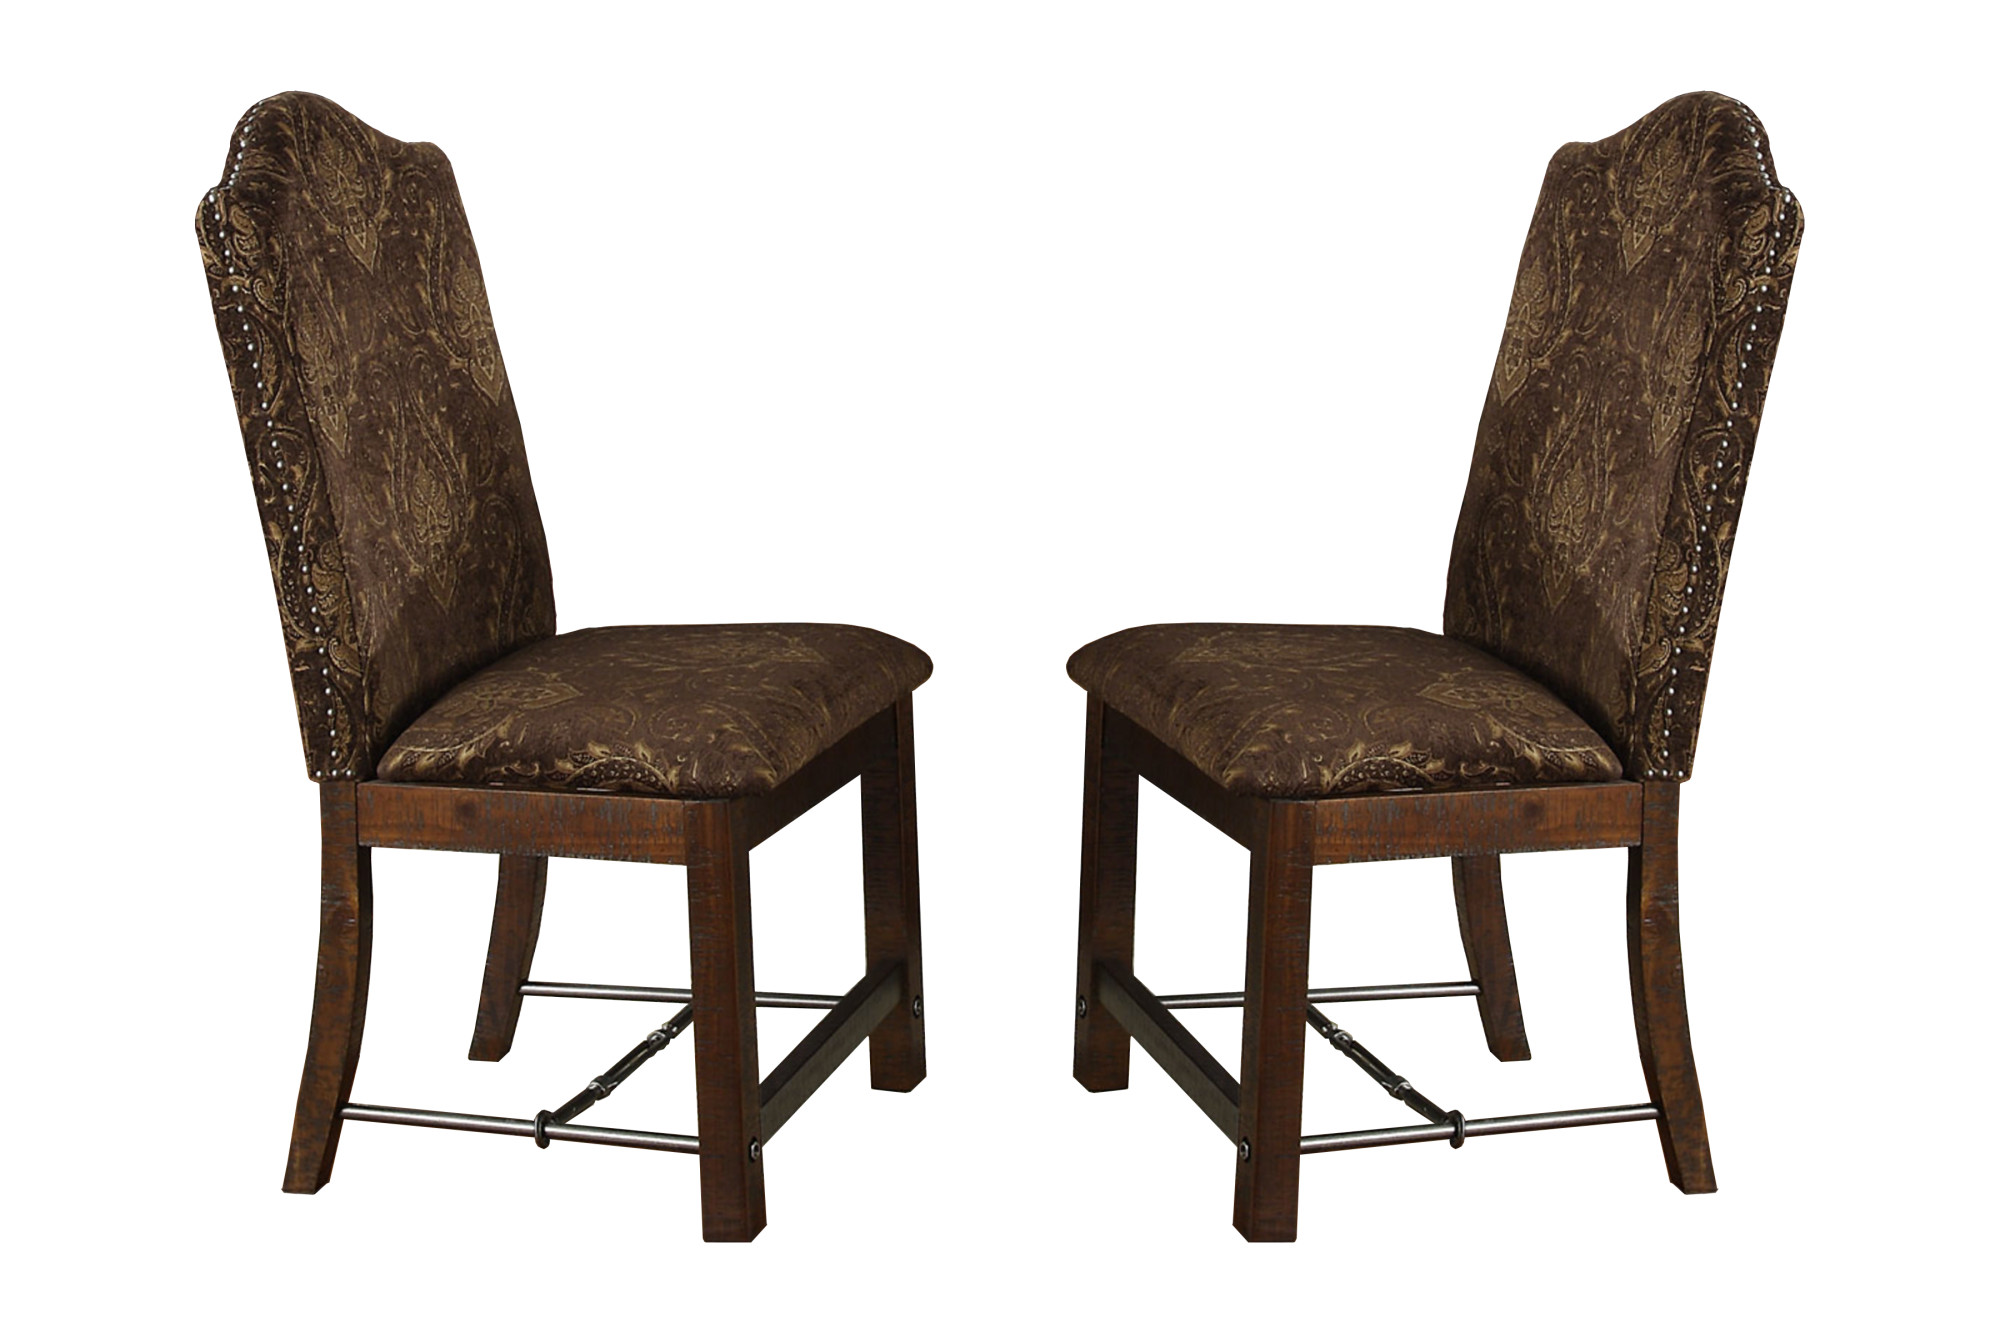 upholstered chair with nailhead trim guidecraft table and chairs emerald home castlegate pine brown dining turnbuckle bracing set of two walmart com